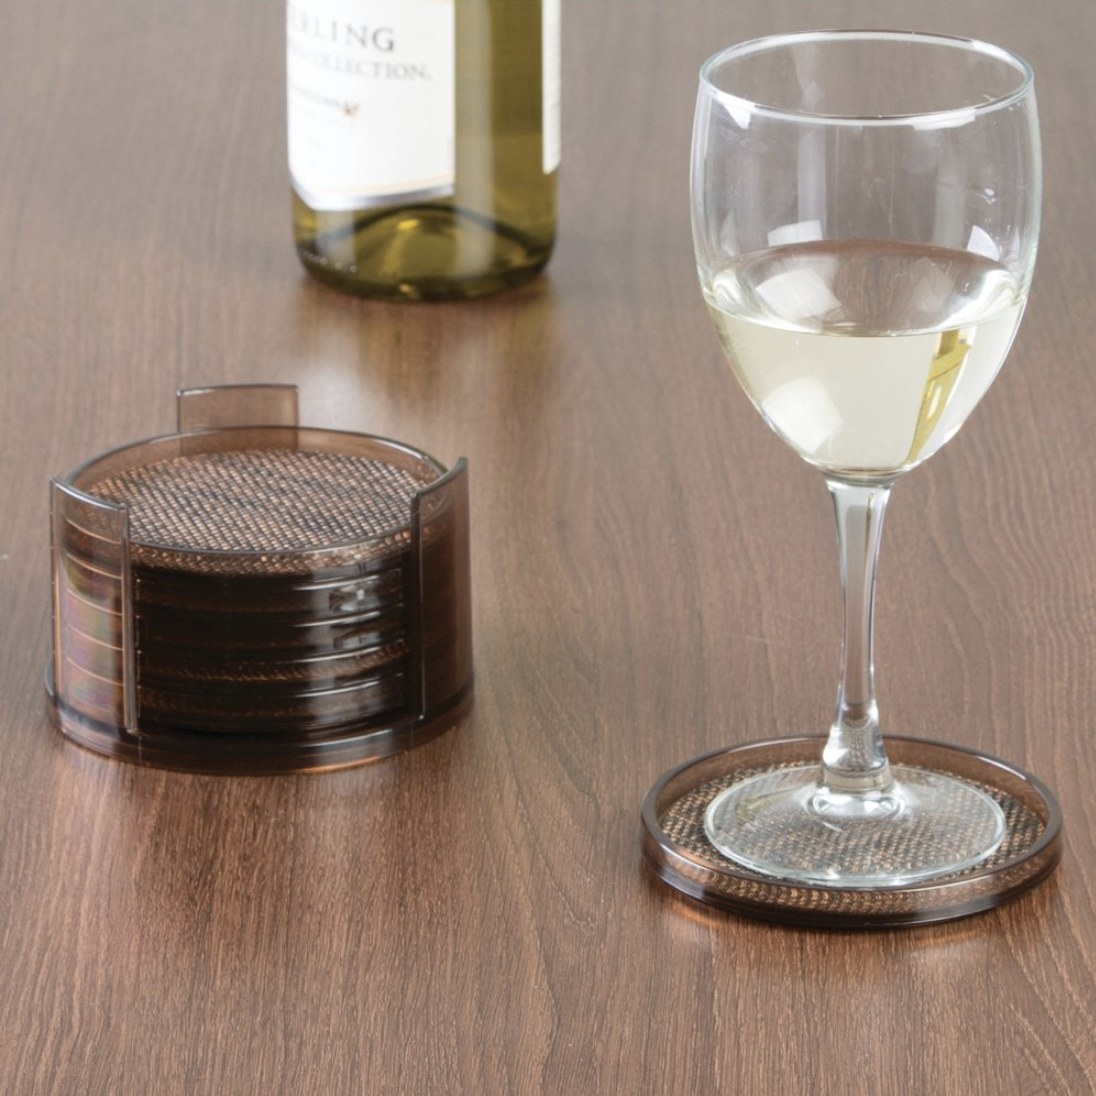 A set of coasters in a stack and one on a table under a wine glass filled with white wine